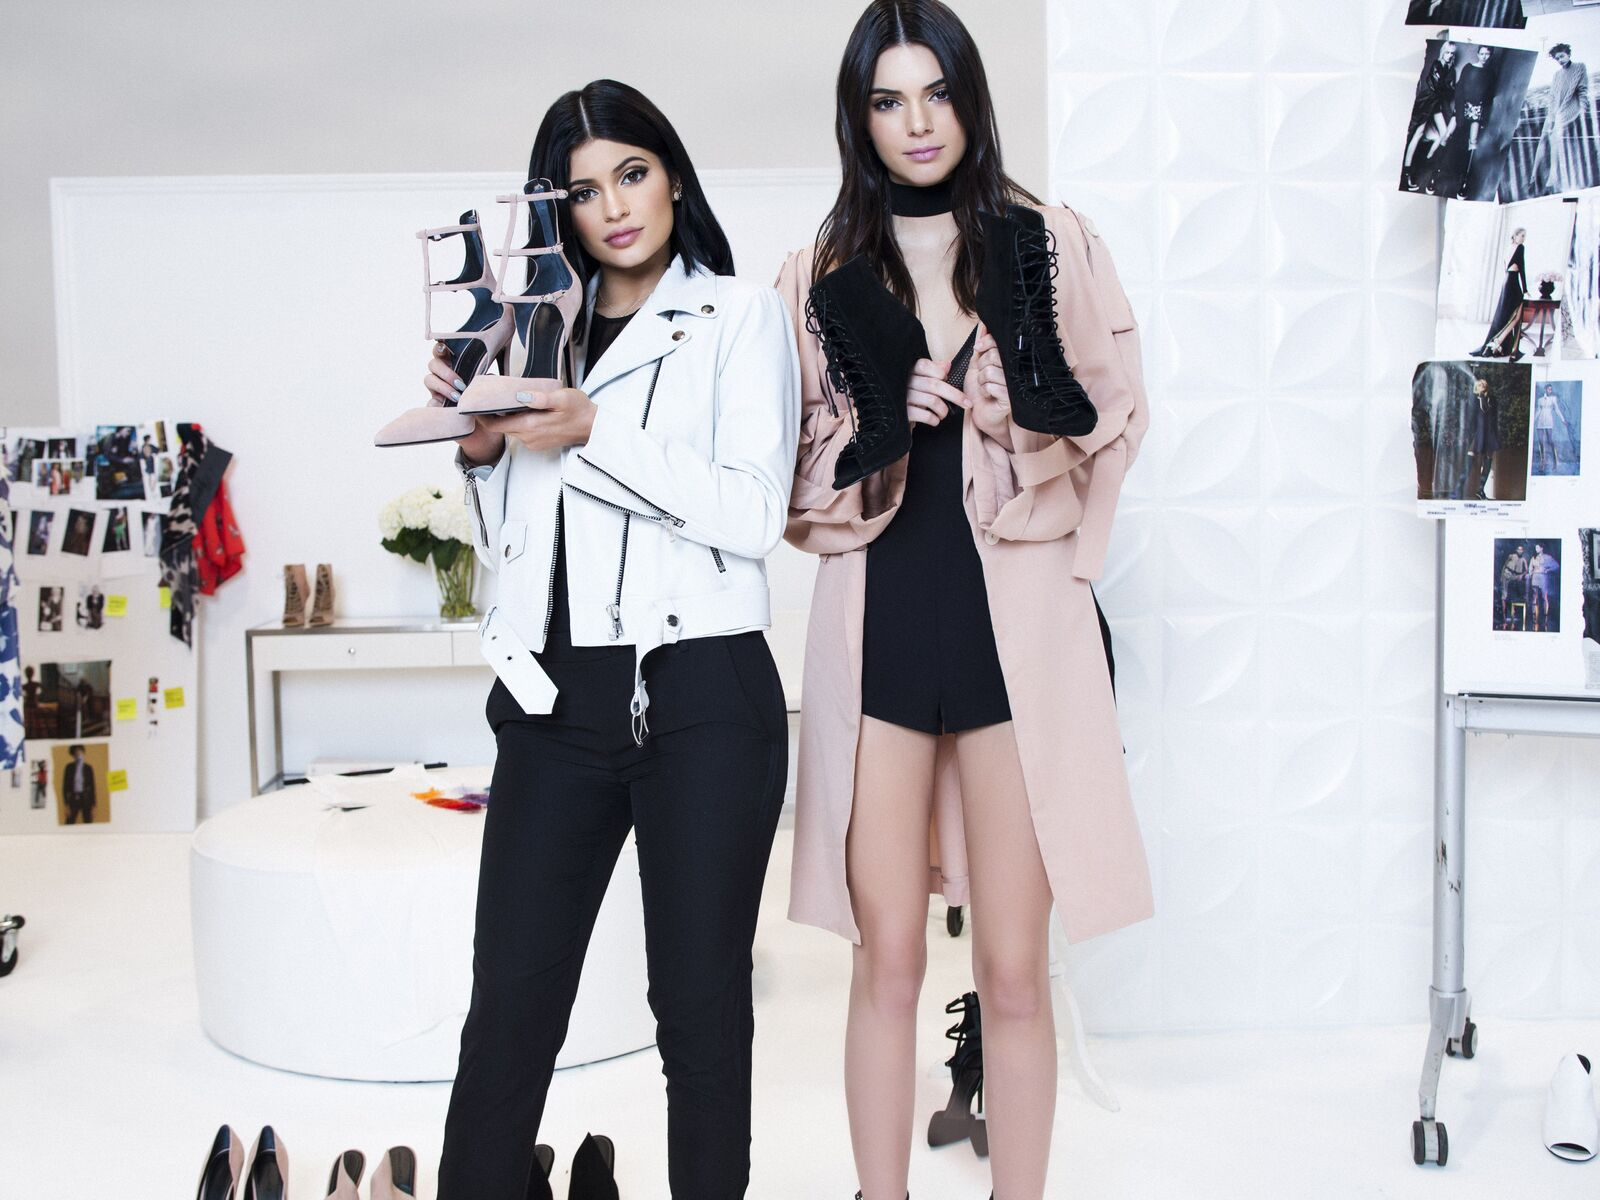 kendall-and-kylie-jenner-2018-5k-4f.jpg